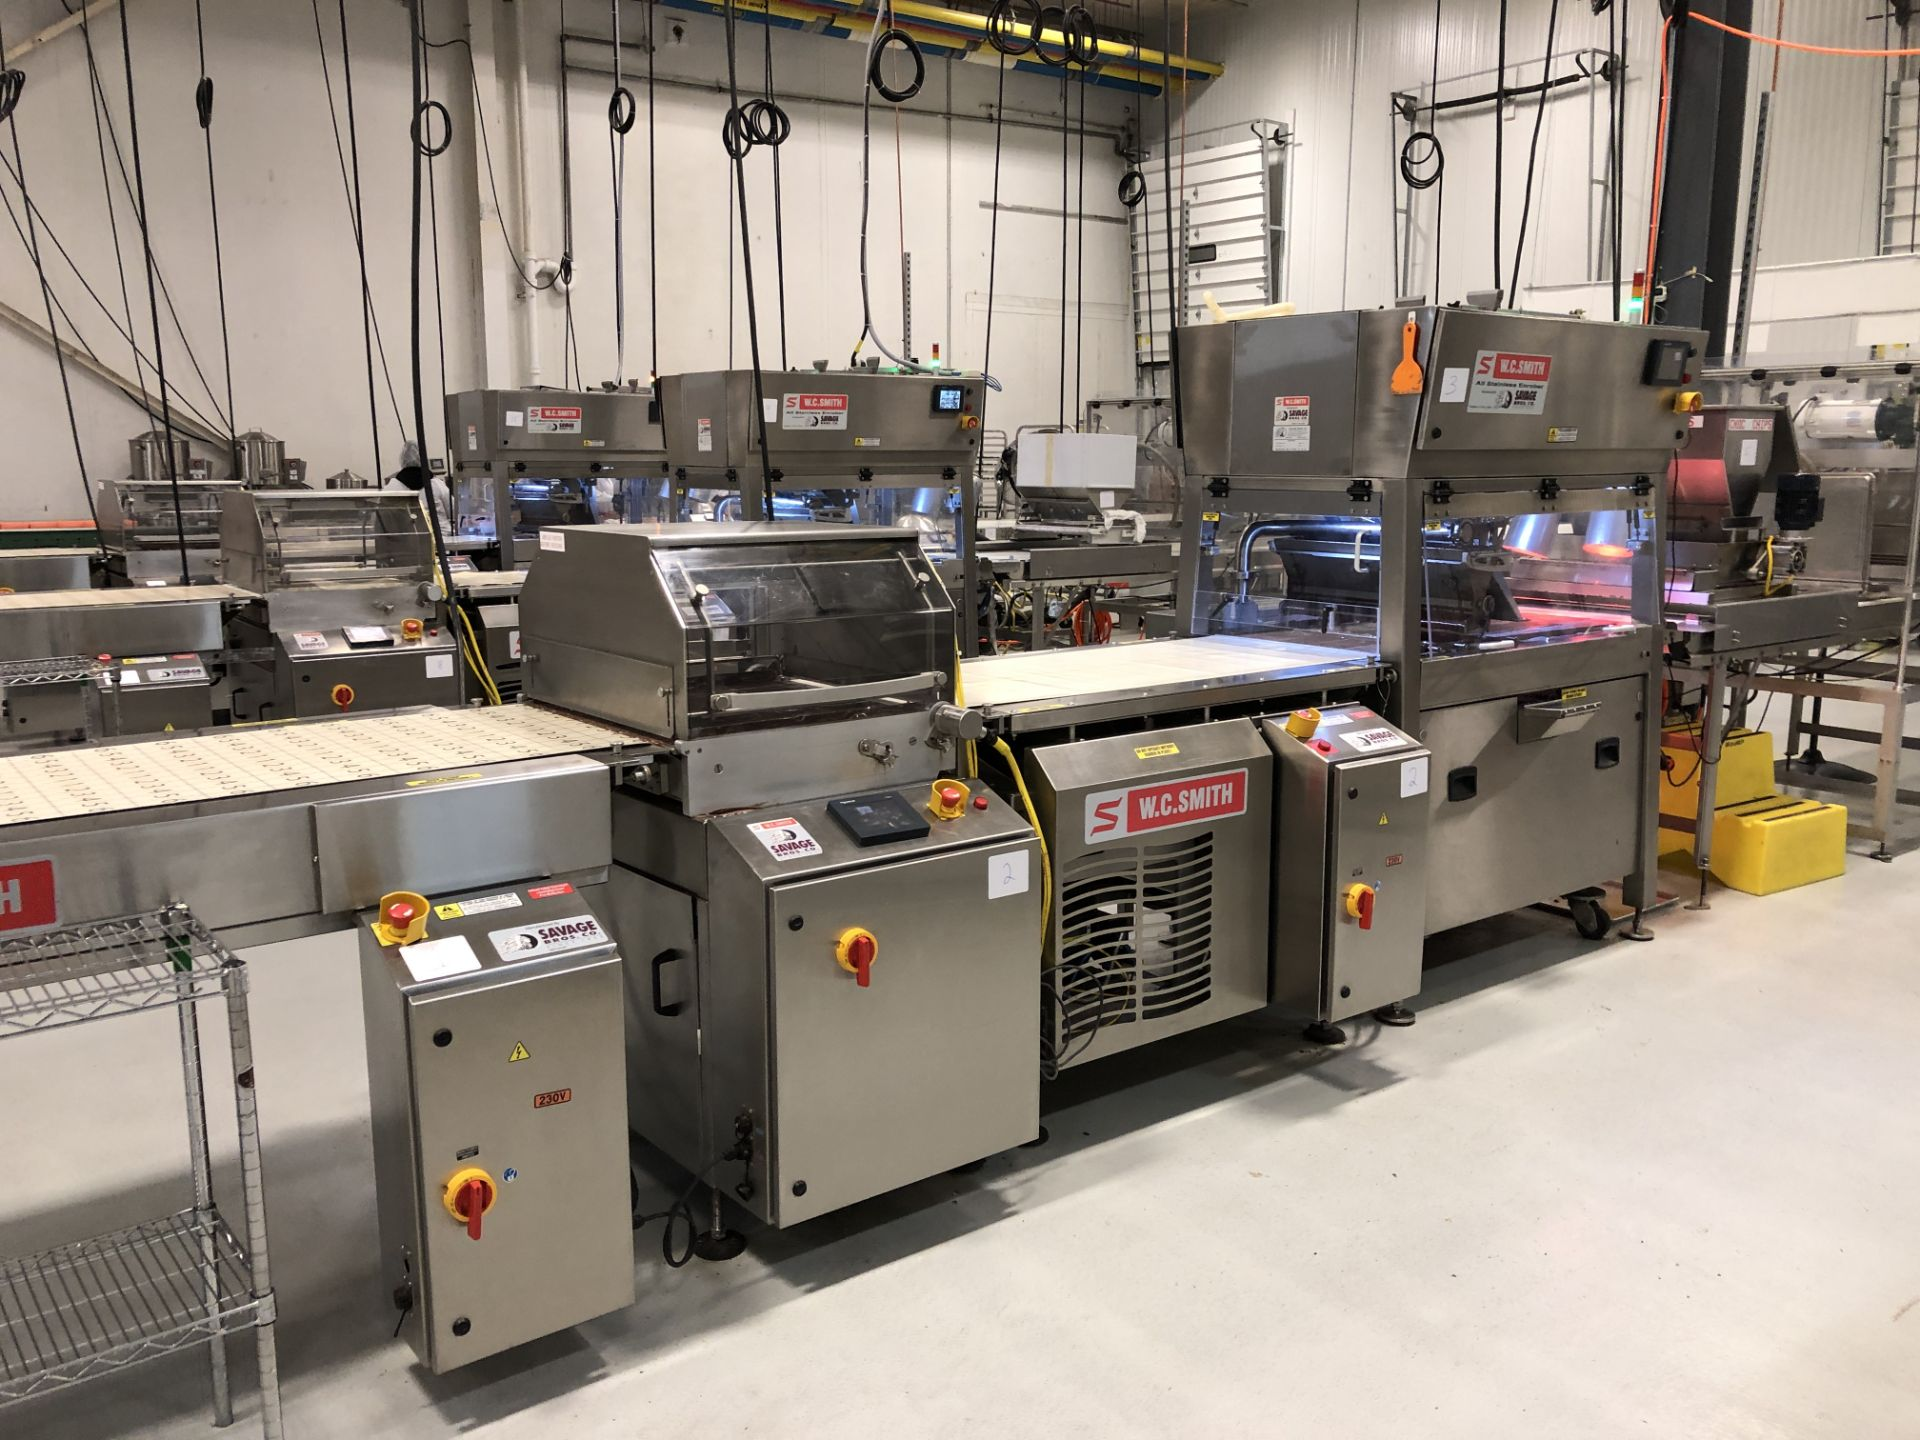 """Lot 2 - Smith 24"""" Stainless Steel Enrobing line – New 2013 - Smith model 5224-49 8-ft long Stainless Steel"""